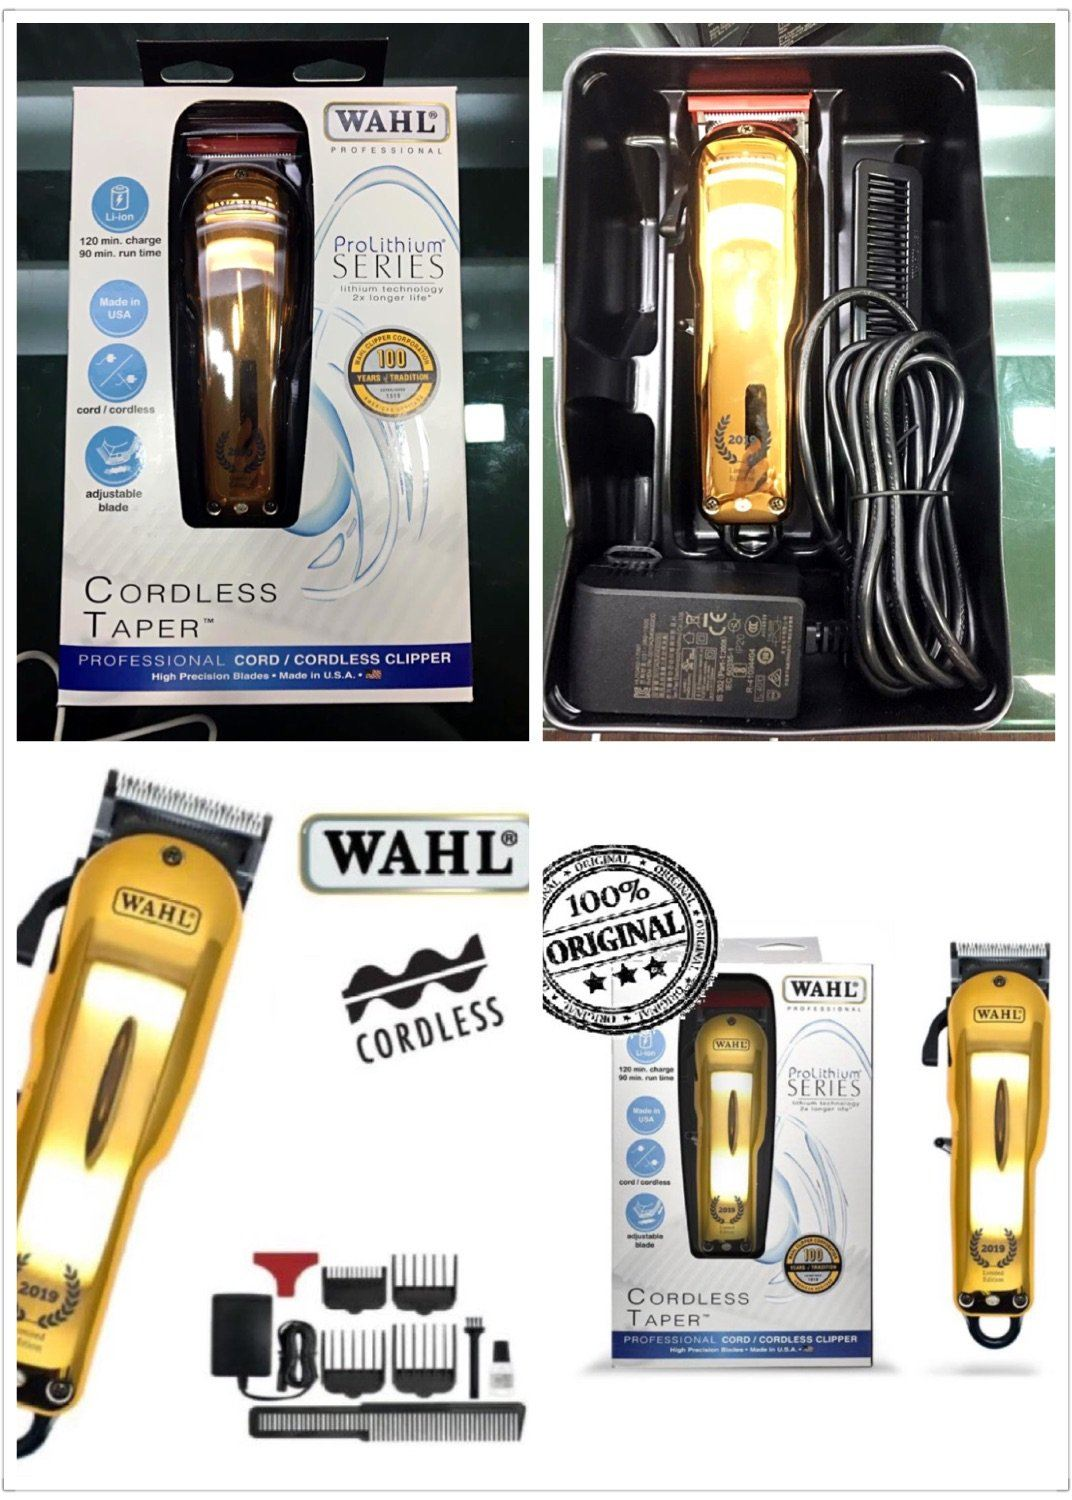 WAHL Prolithium Series Pro Super Taper Cordless (2019 Gold Limited Edition 100 Years)